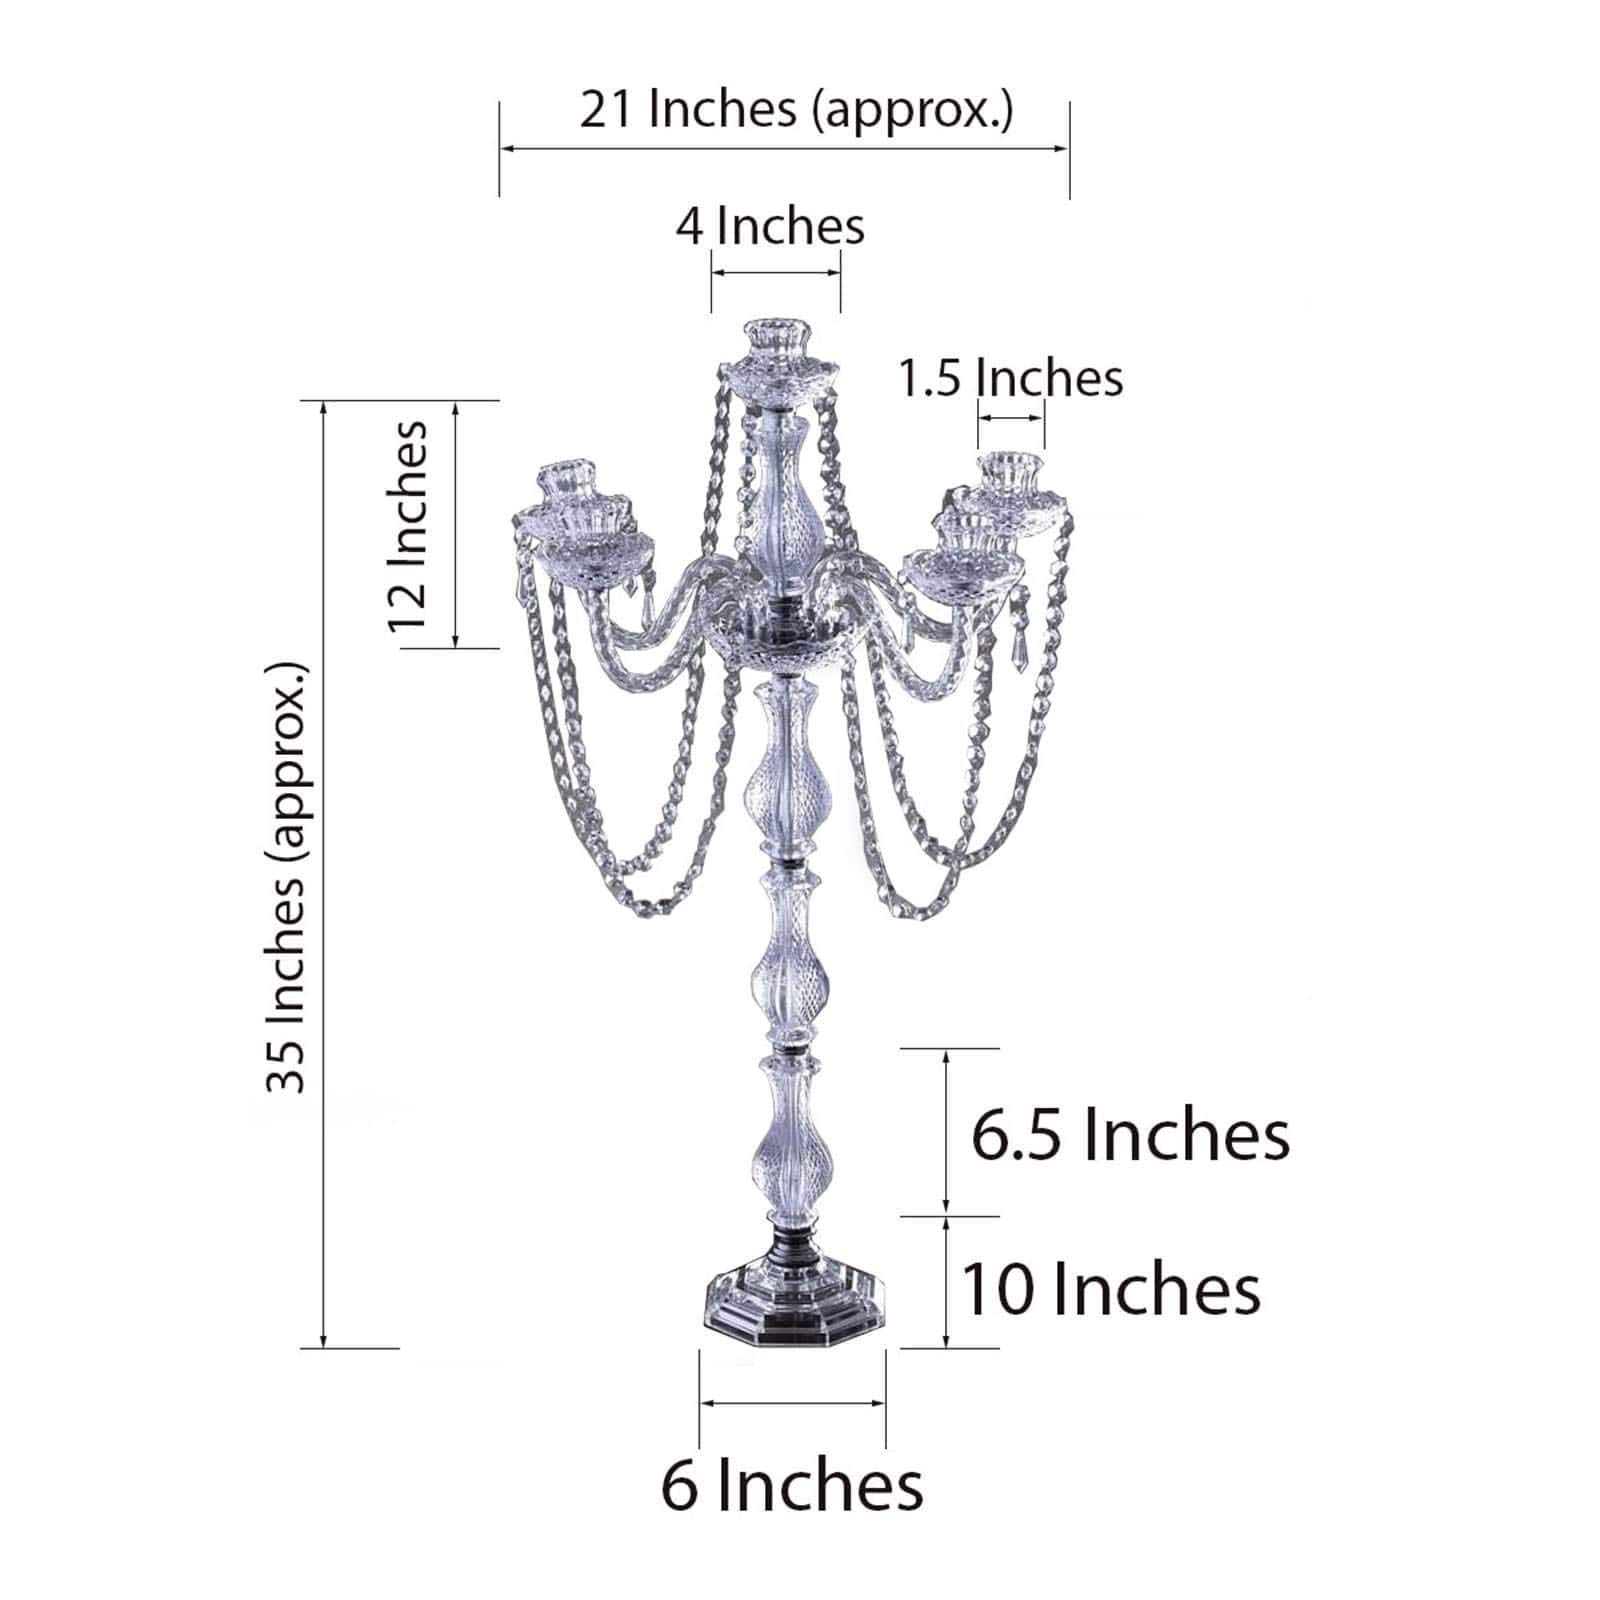 BalsaCircle 35-Inch Tall Crystal Candle Holder Candelabra - Wedding Party Dining Table Home Centerpieces Decorations